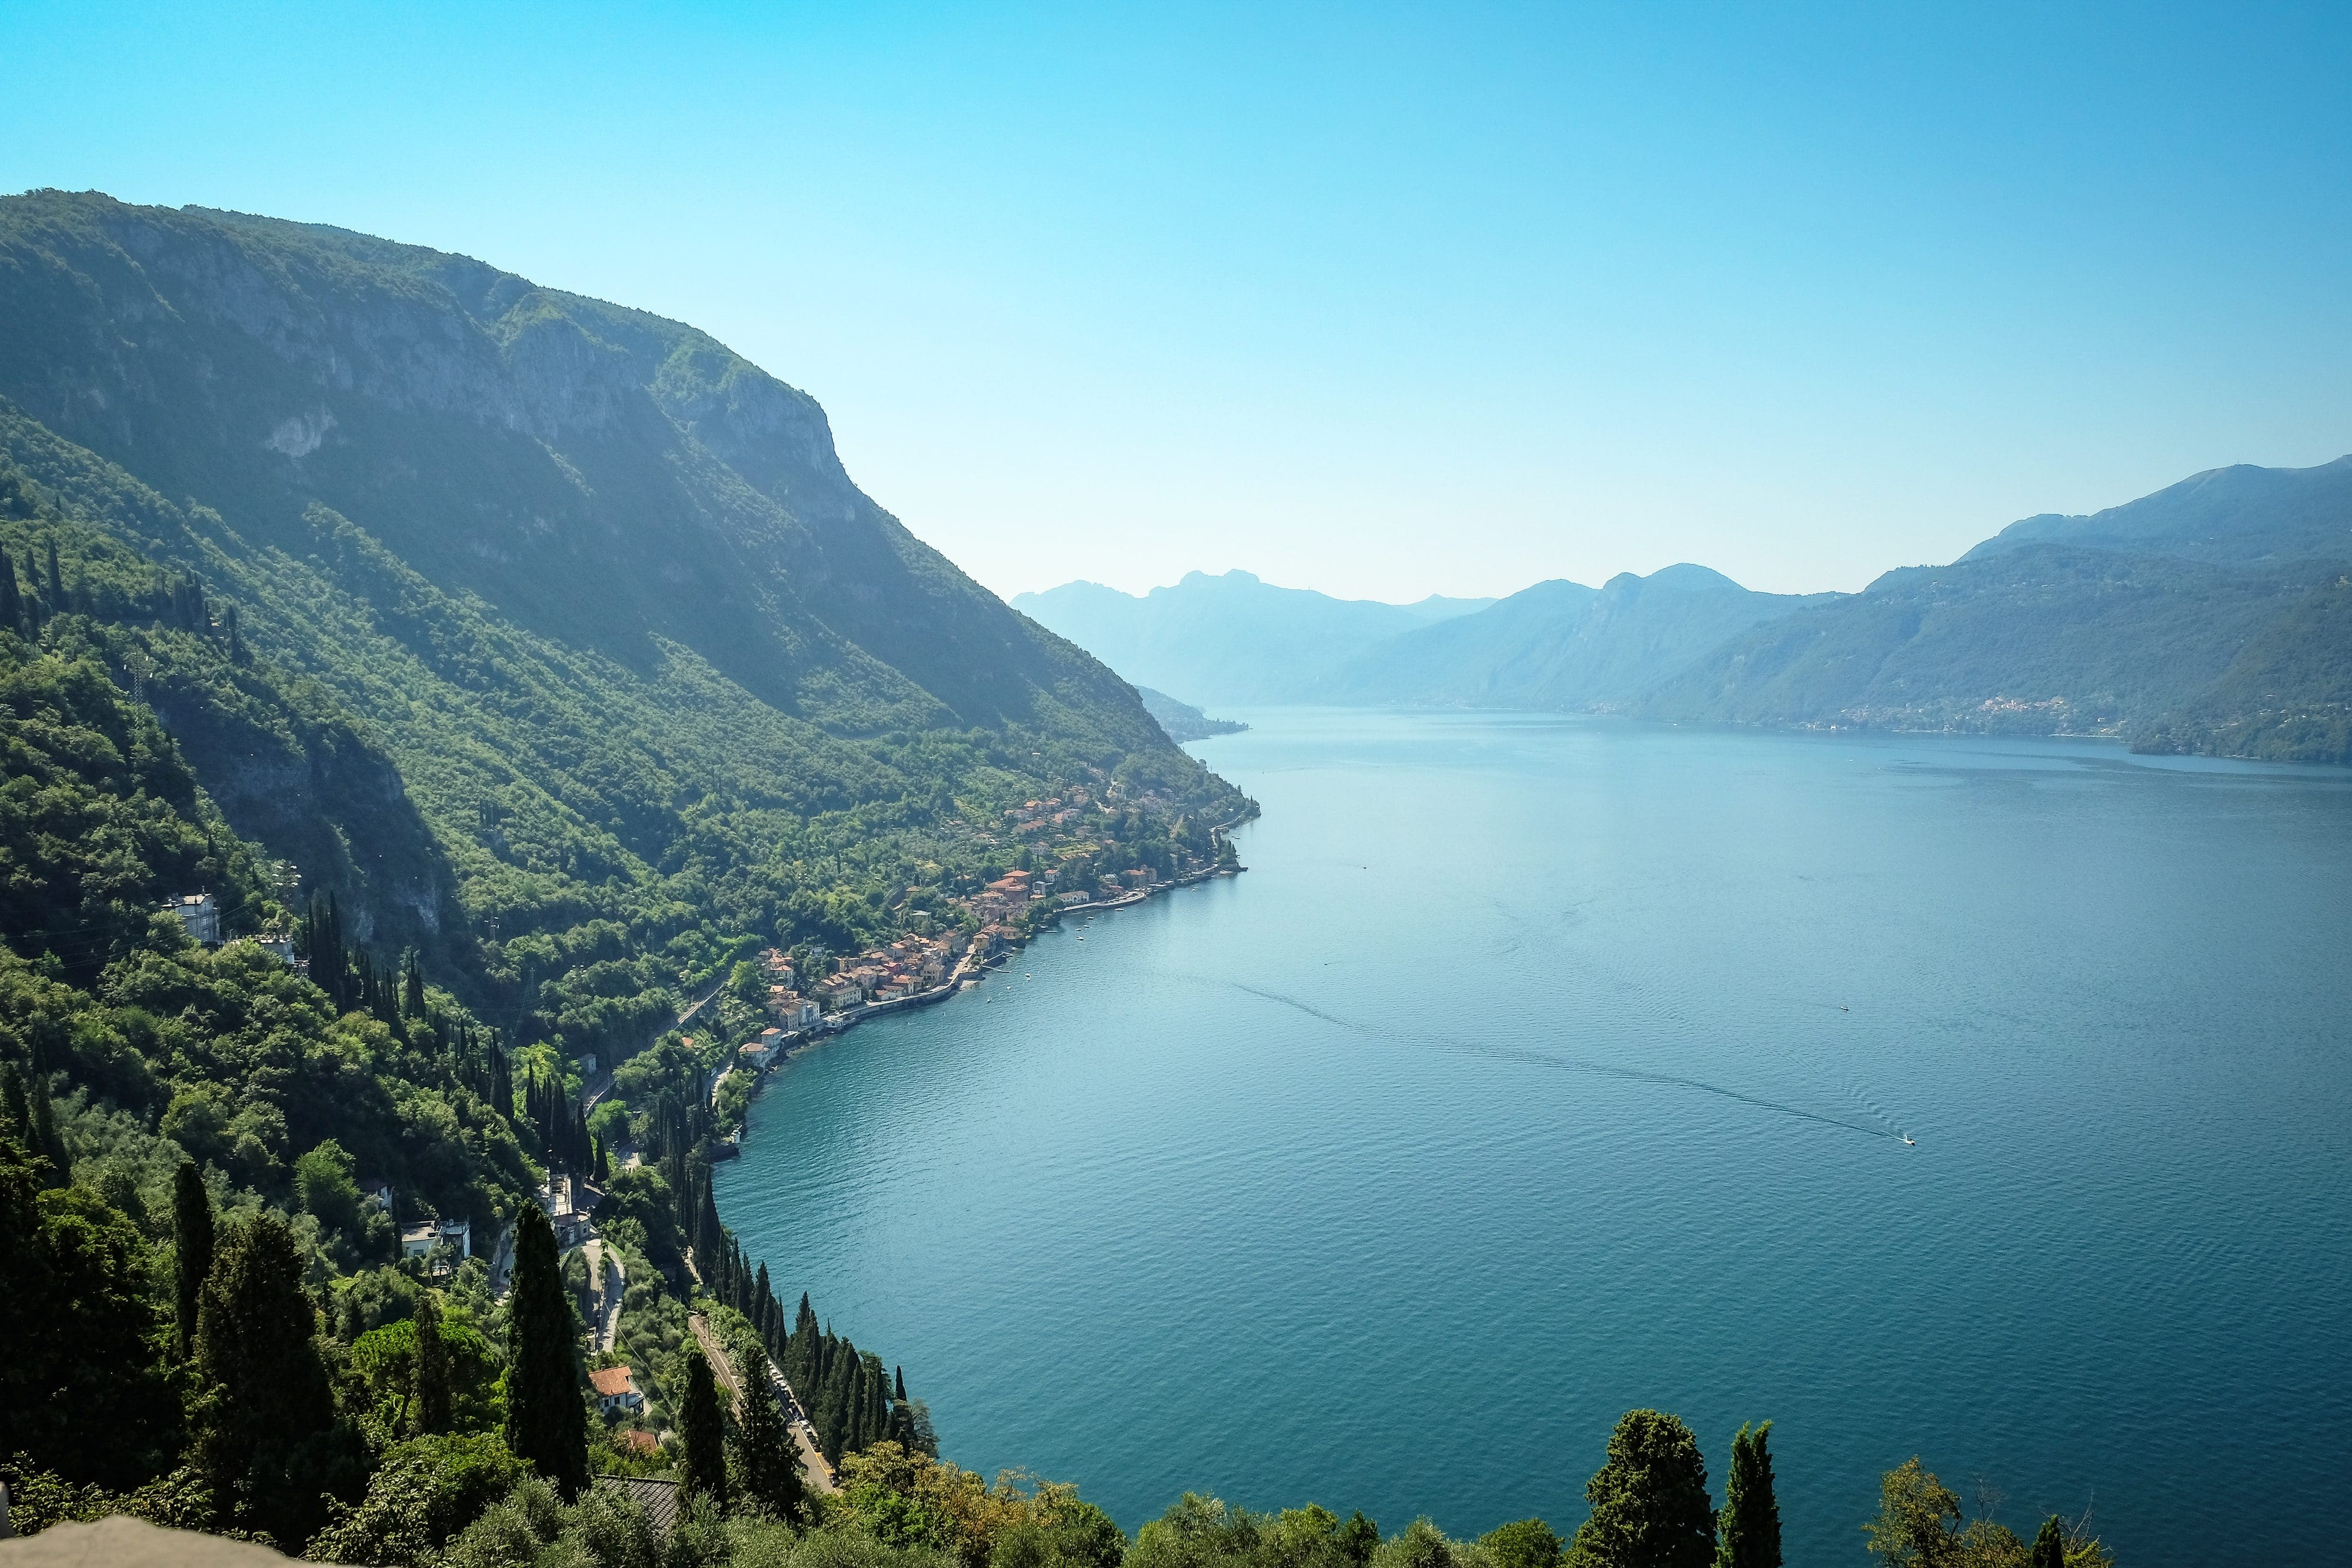 Looking out over Lake Como's blue waters